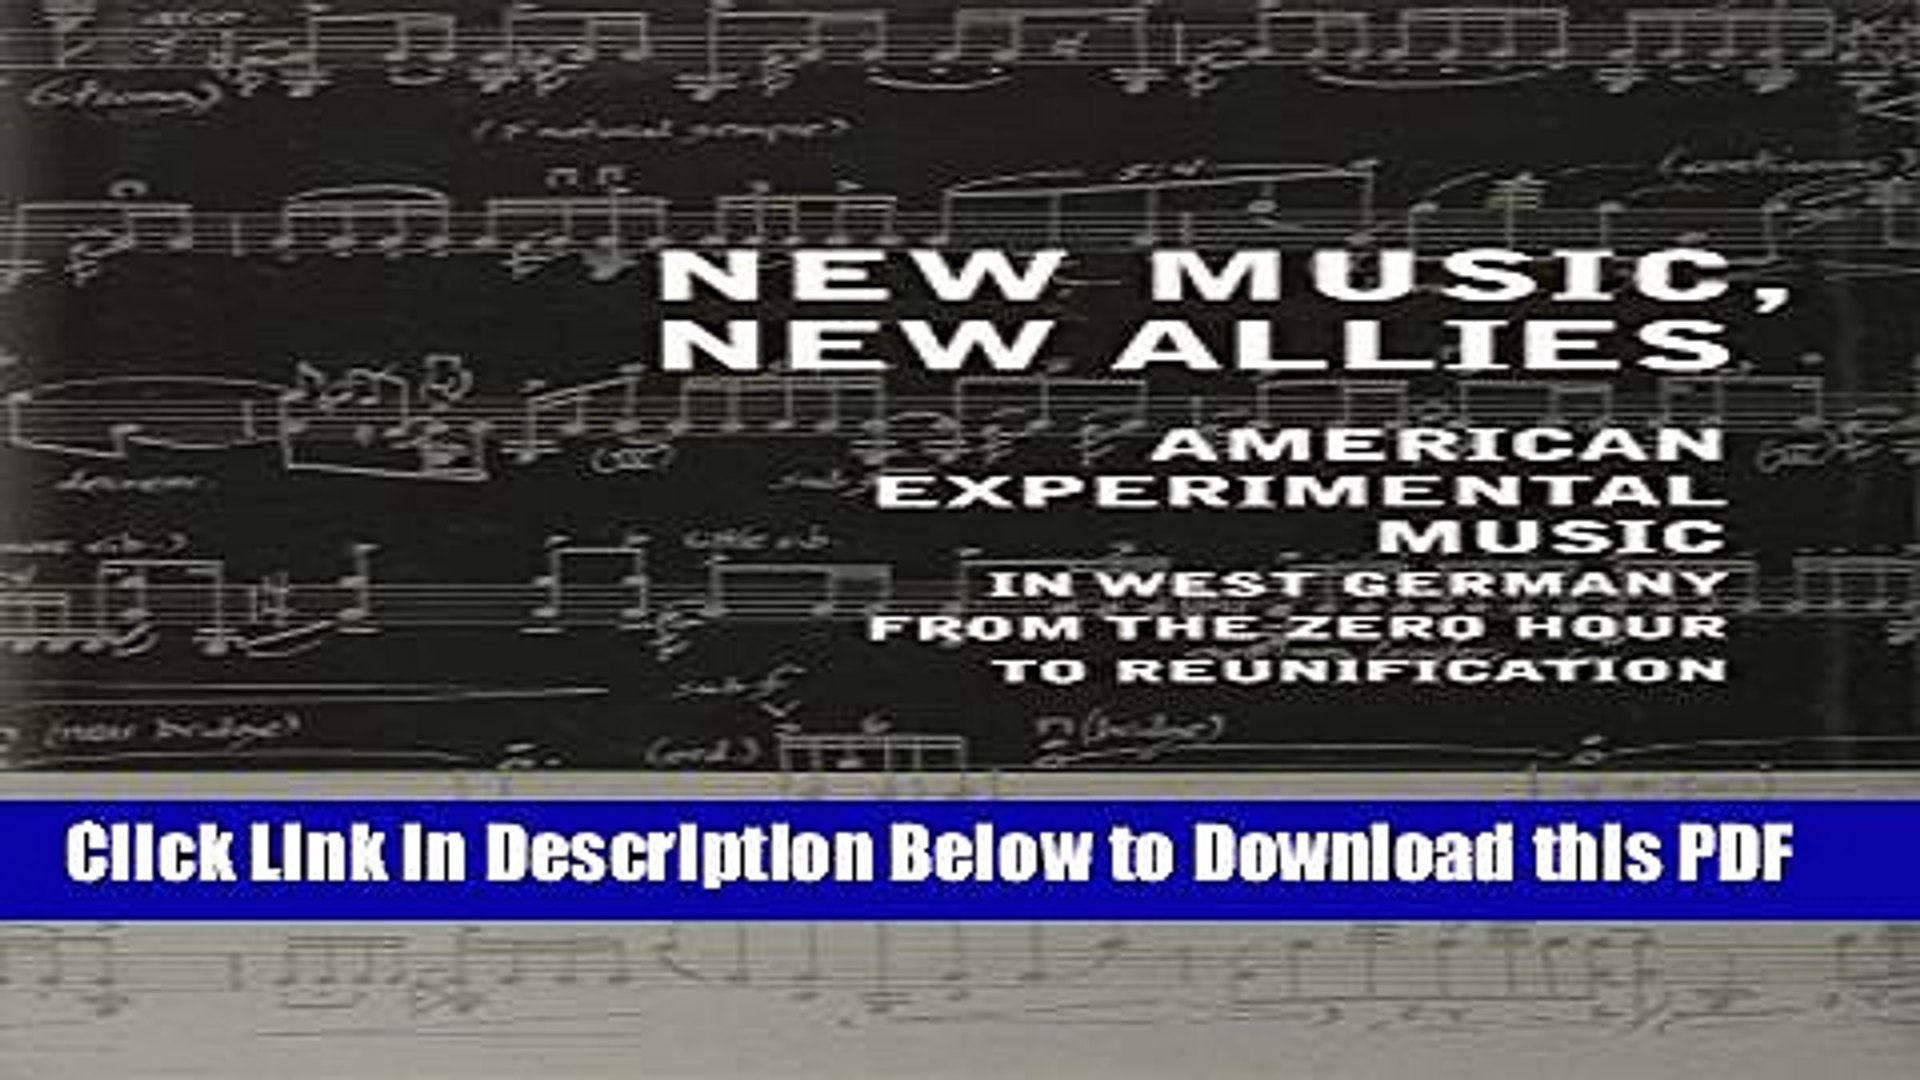 [Read] New Music, New Allies: American Experimental Music in West Germany from the Zero Hour to